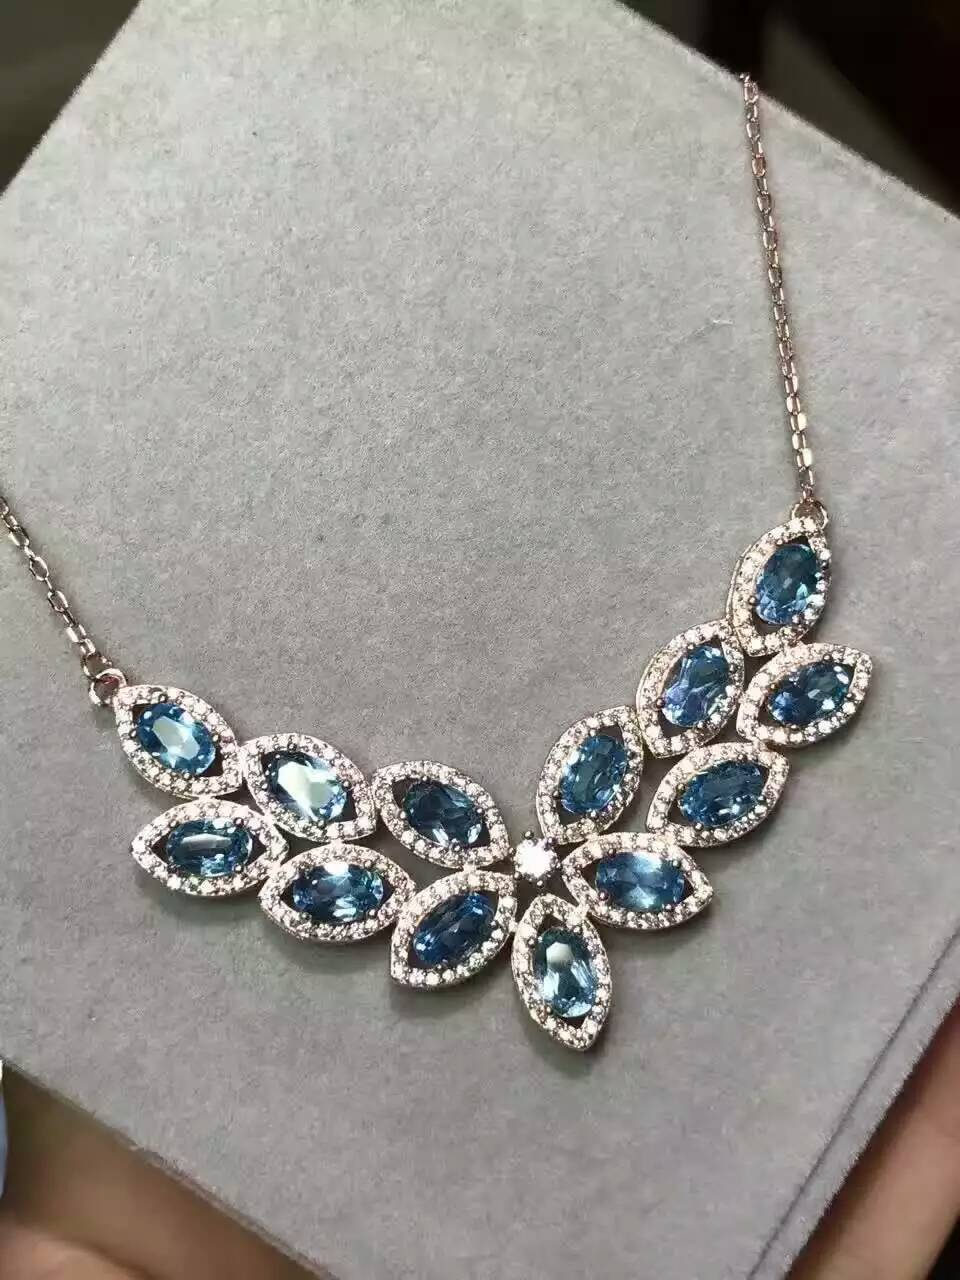 Natural blue topaz gem Necklace natural gemstone Pendant Necklace S925 silver trendy Luxury row Water droplets women Jewelry jzn0007 top quality blue opal gem silver necklace new trendy necklace for women fine jewelry gorgeous unisex chain necklace